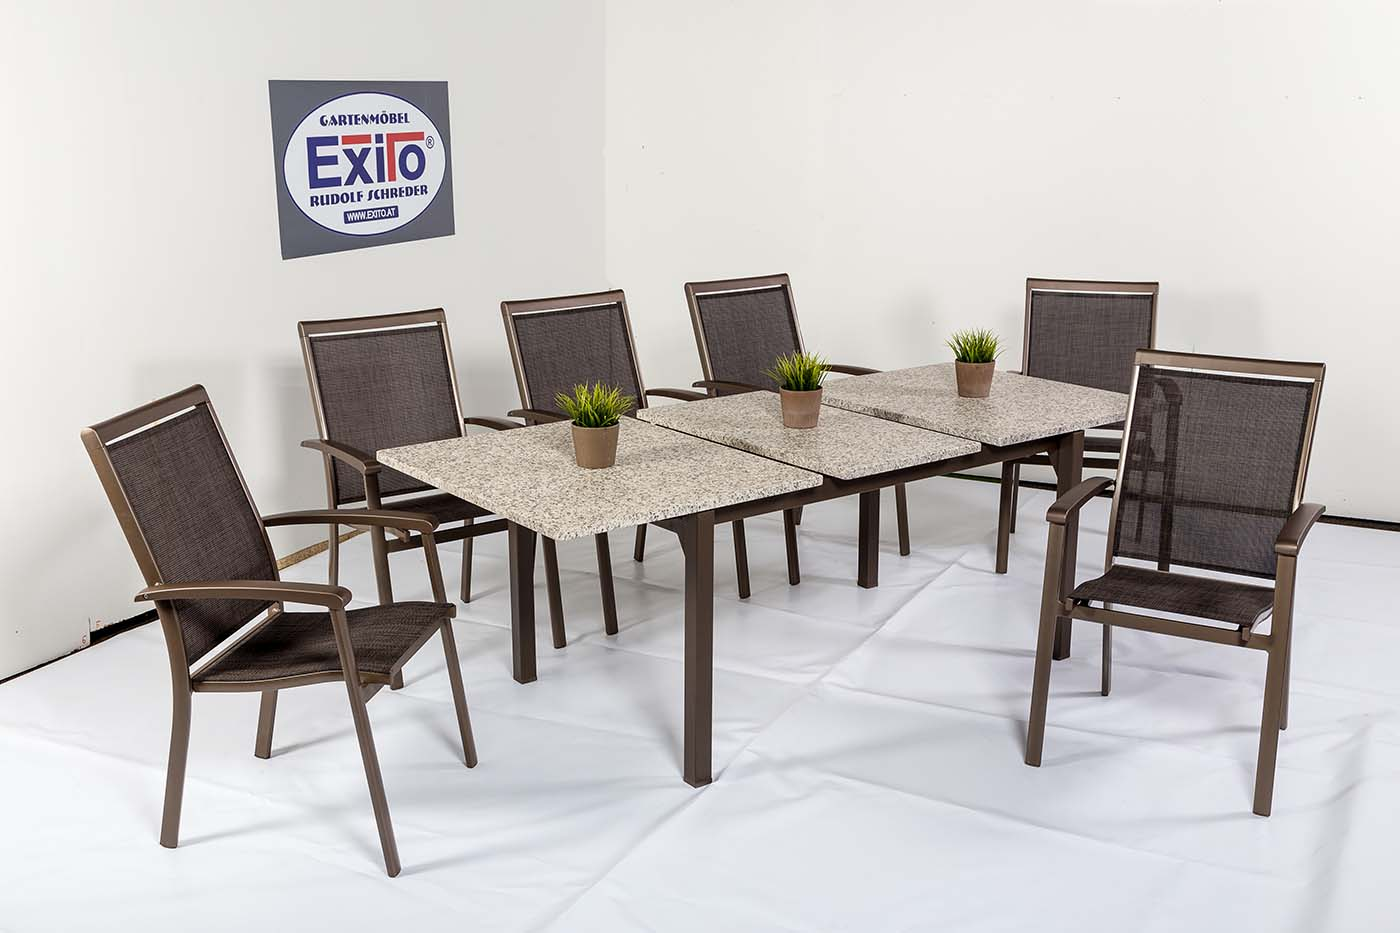 Privat-Kunden | EXITO - OUTDOOR LIVING